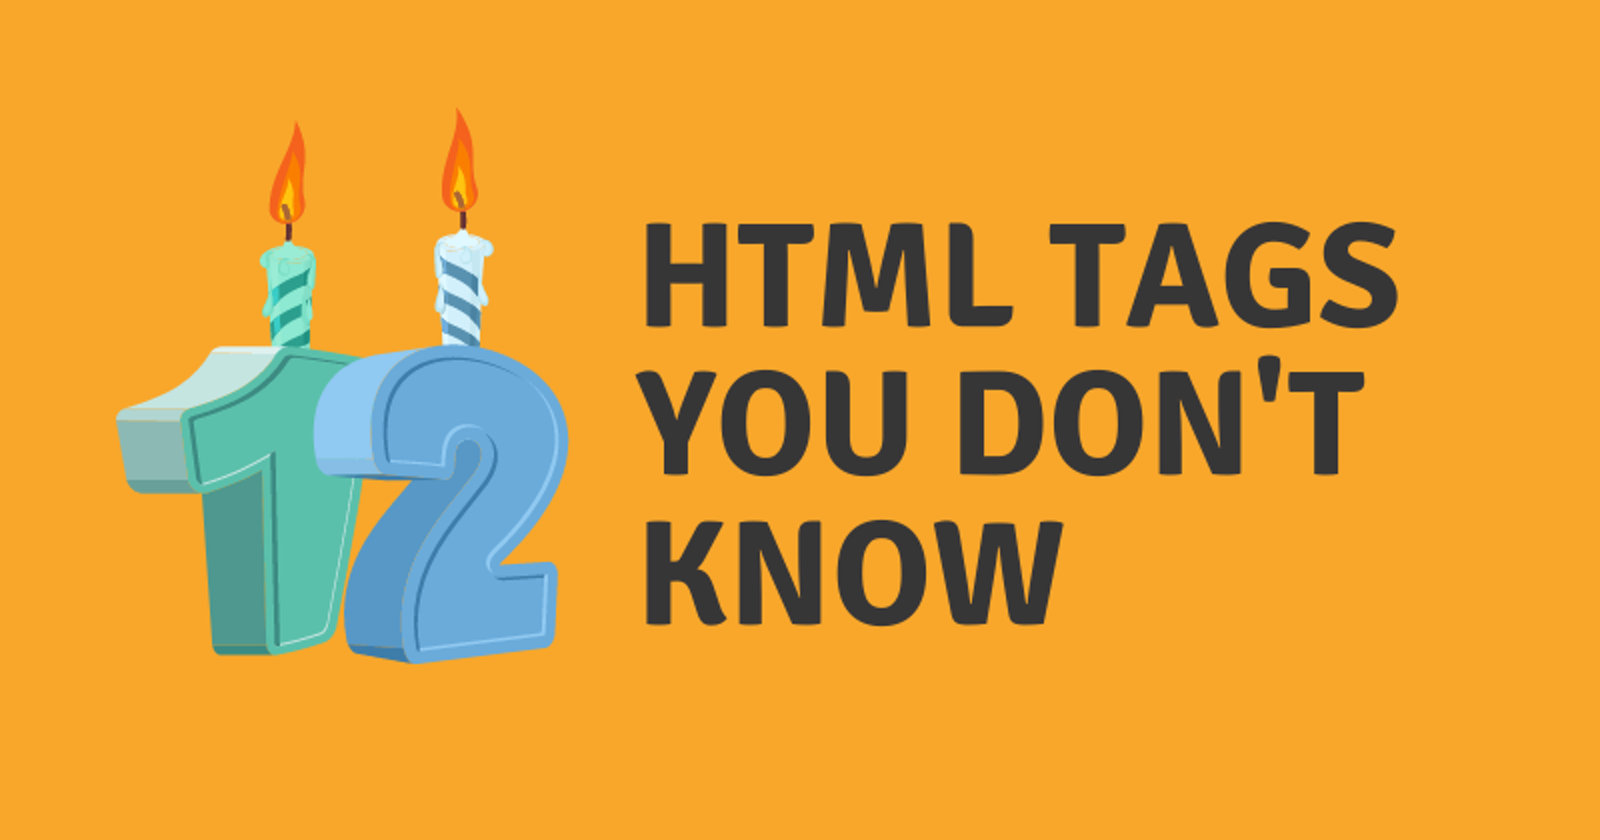 12 HTML Tags You Don't Know